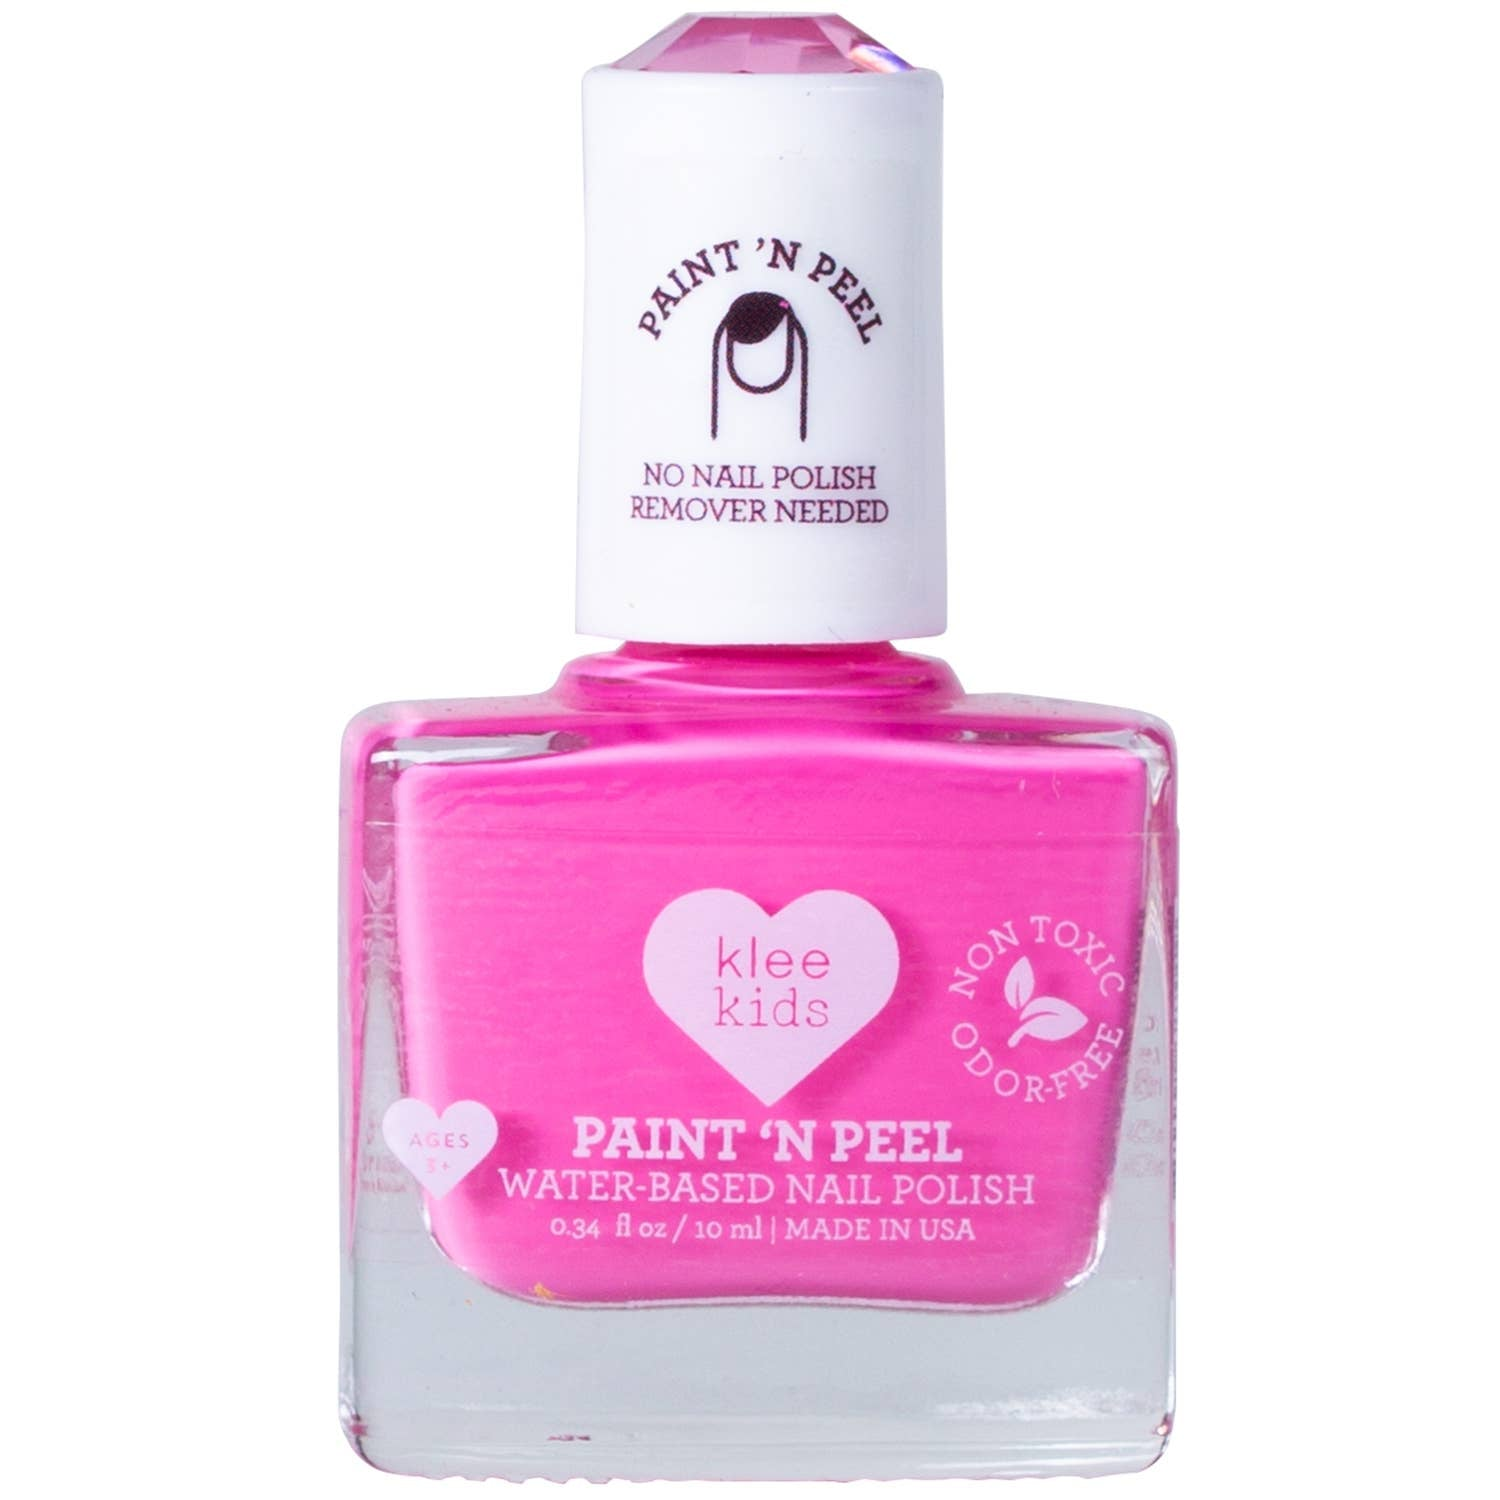 Klee Naturals - Austin - Klee Kids Water-Based Peelable Nail Polish